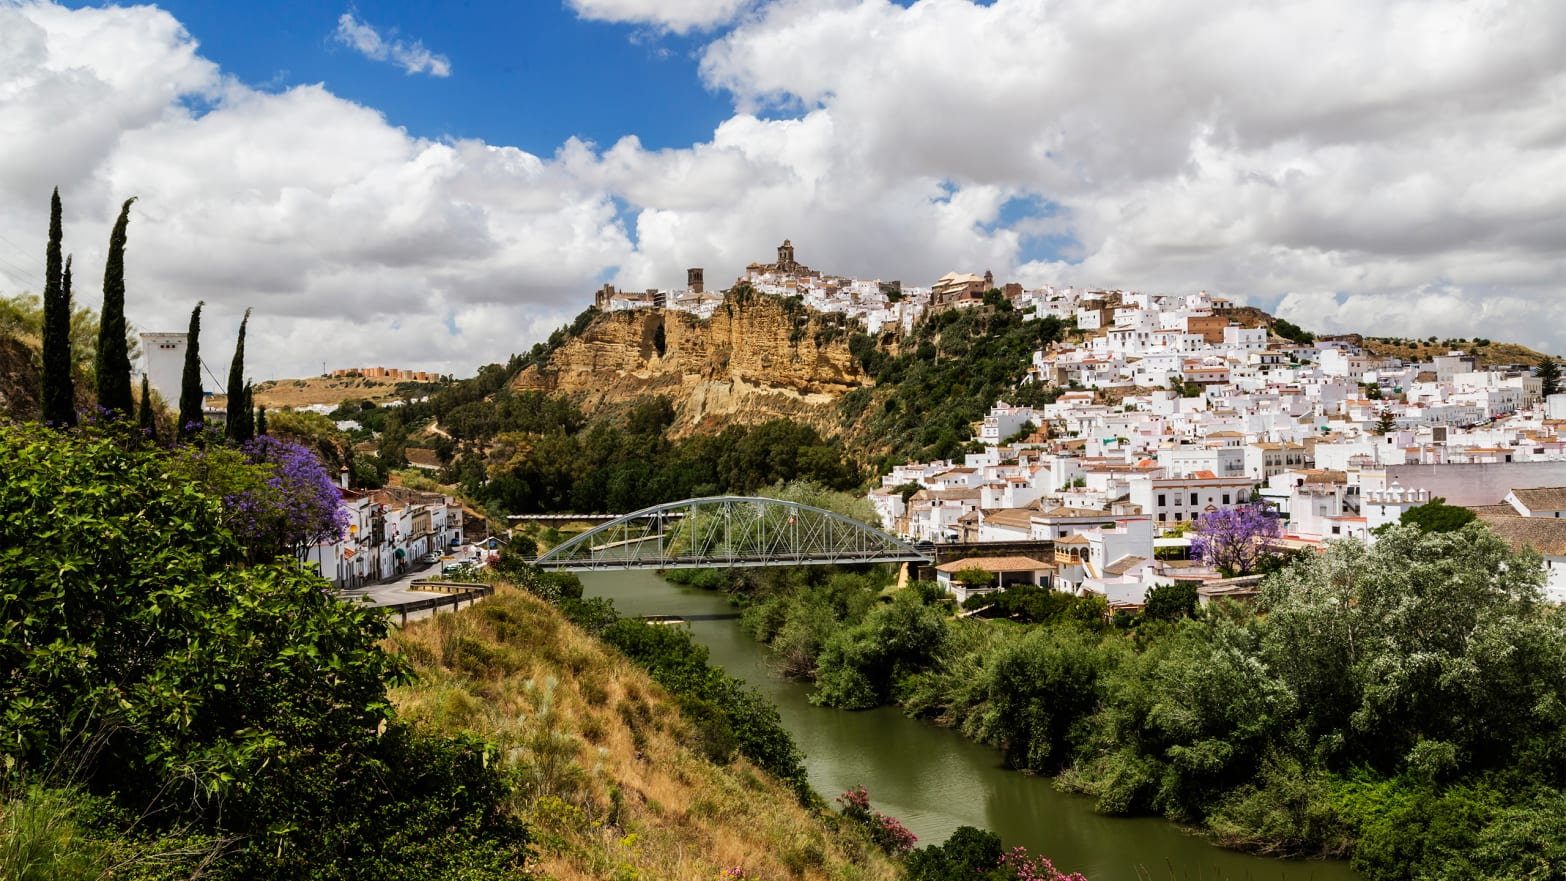 Still-Secret Spain: 9 Fairy-Tale Towns Off the Tourist Track